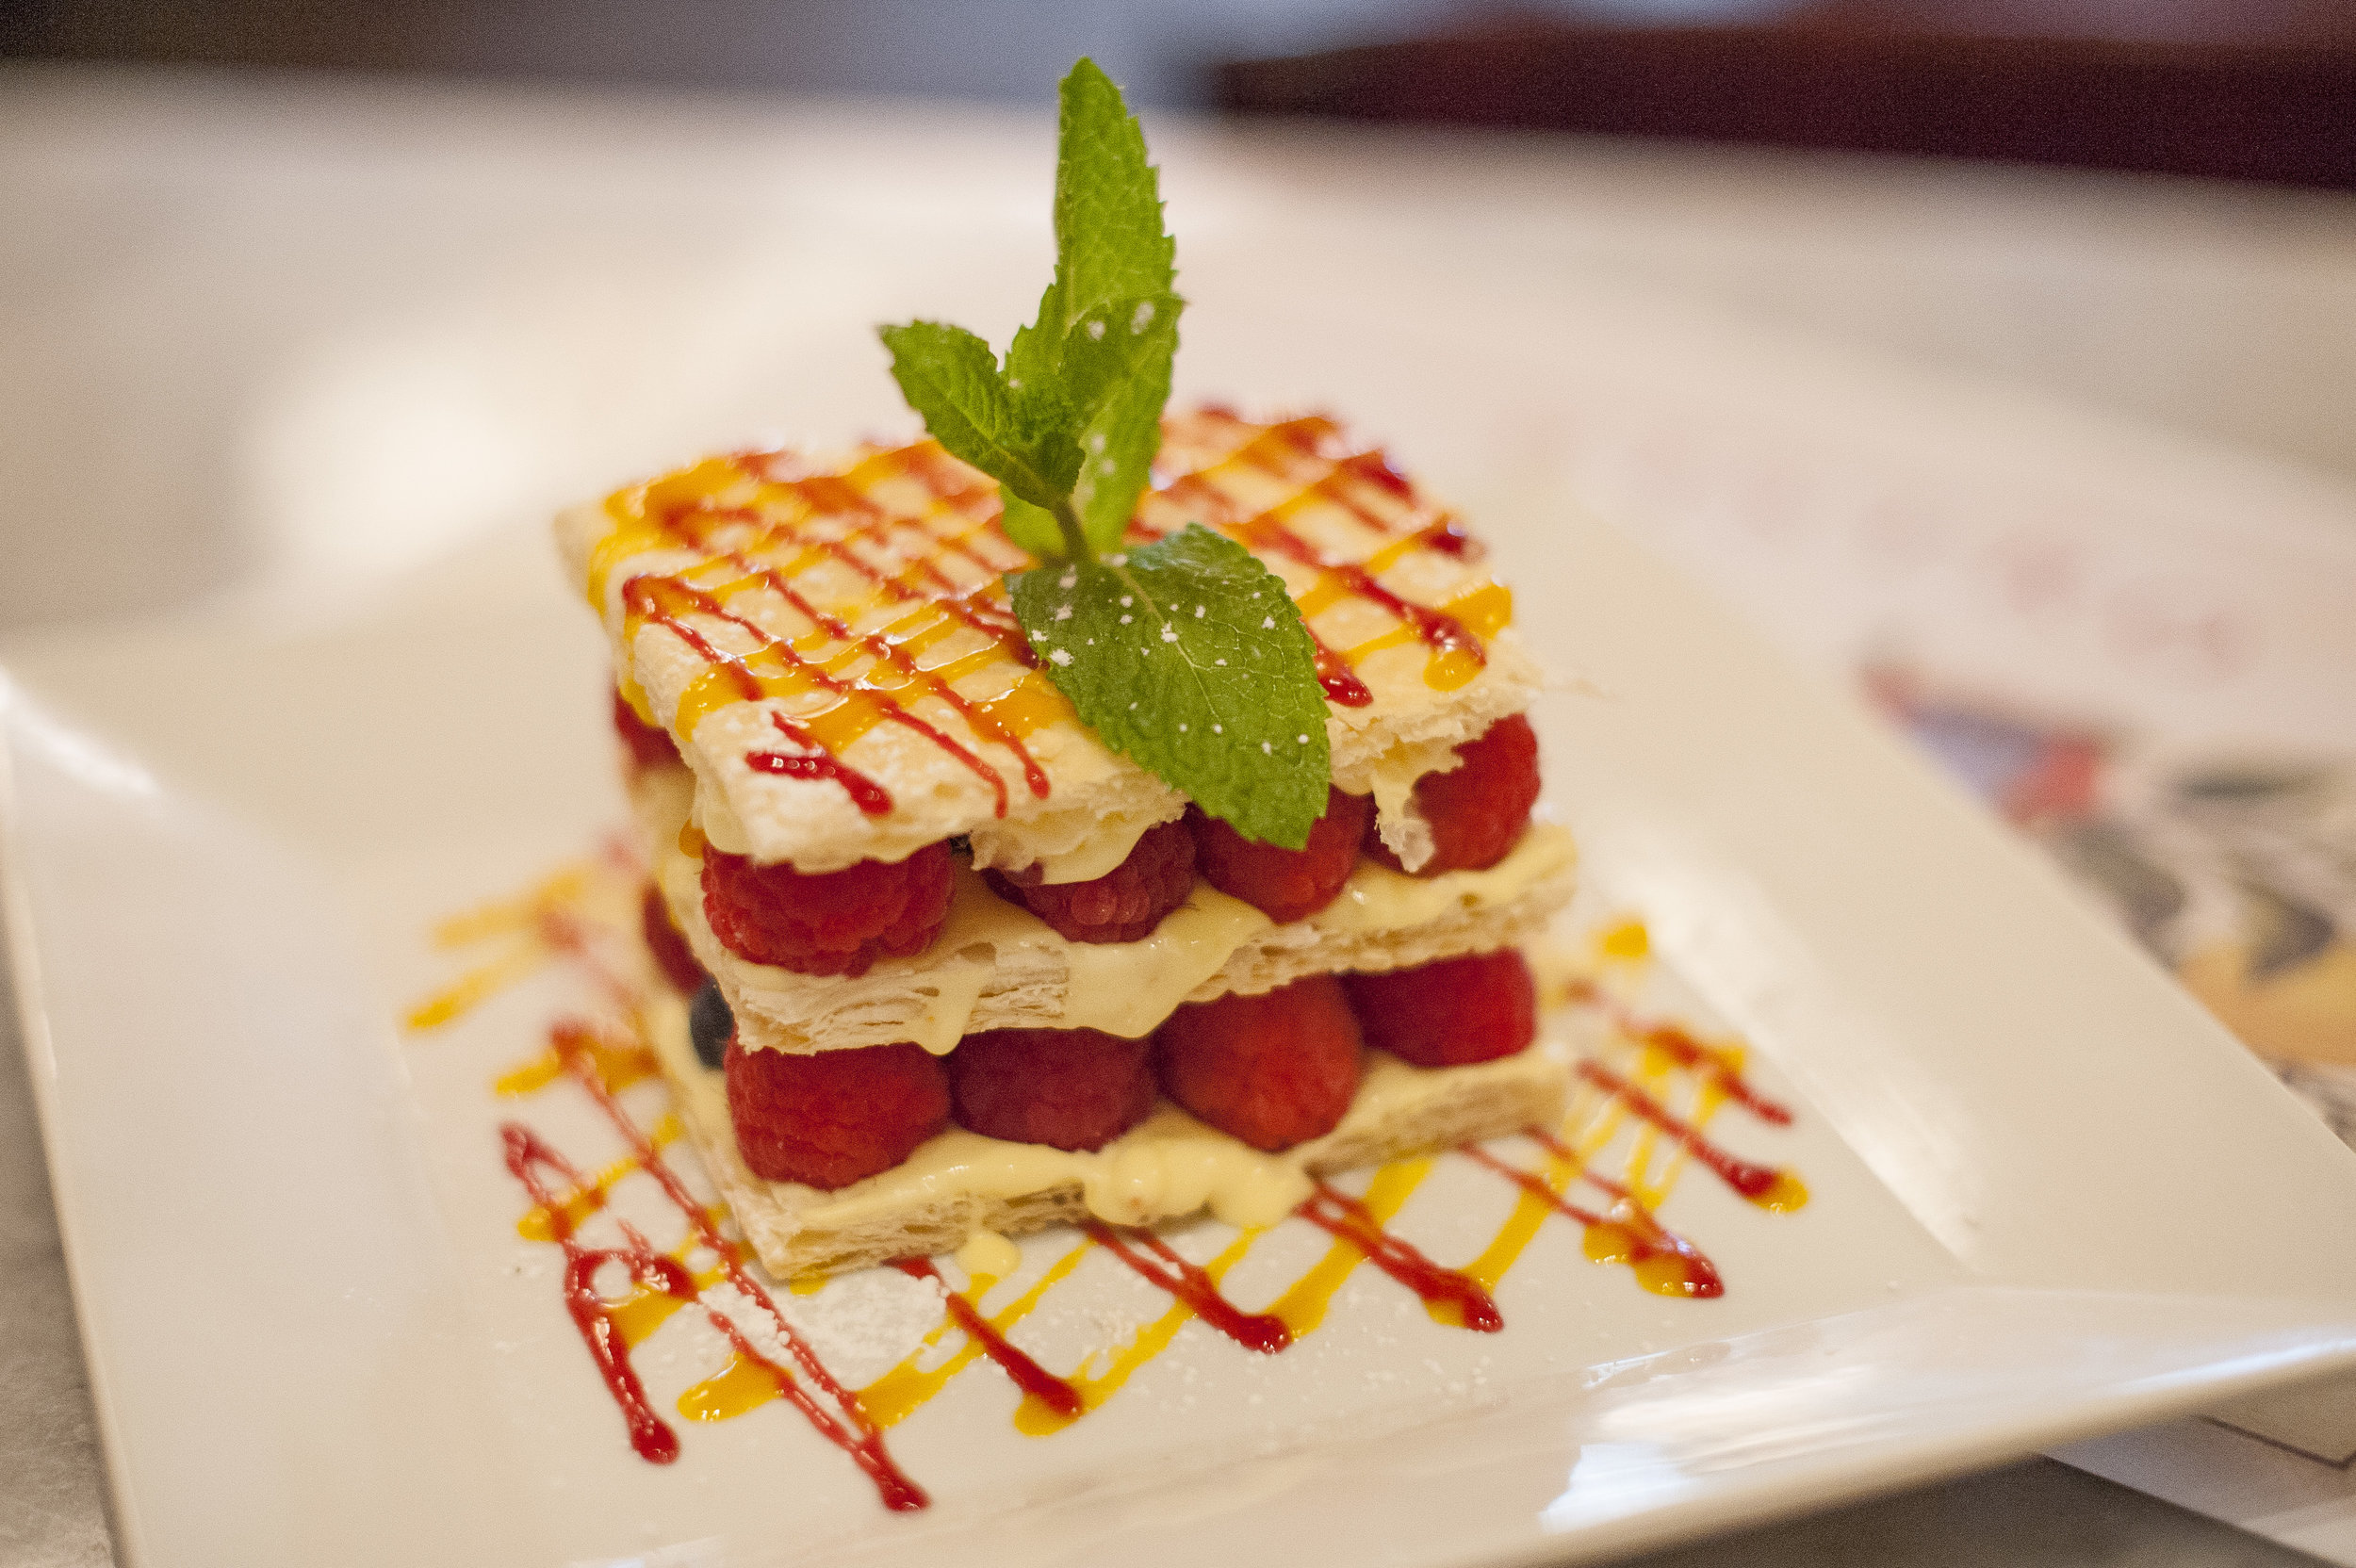 The Mille-Feuille ($12) layers tantalizing mixed fresh fruit with mascarpone cream in a delicately flaky puffed pastry.